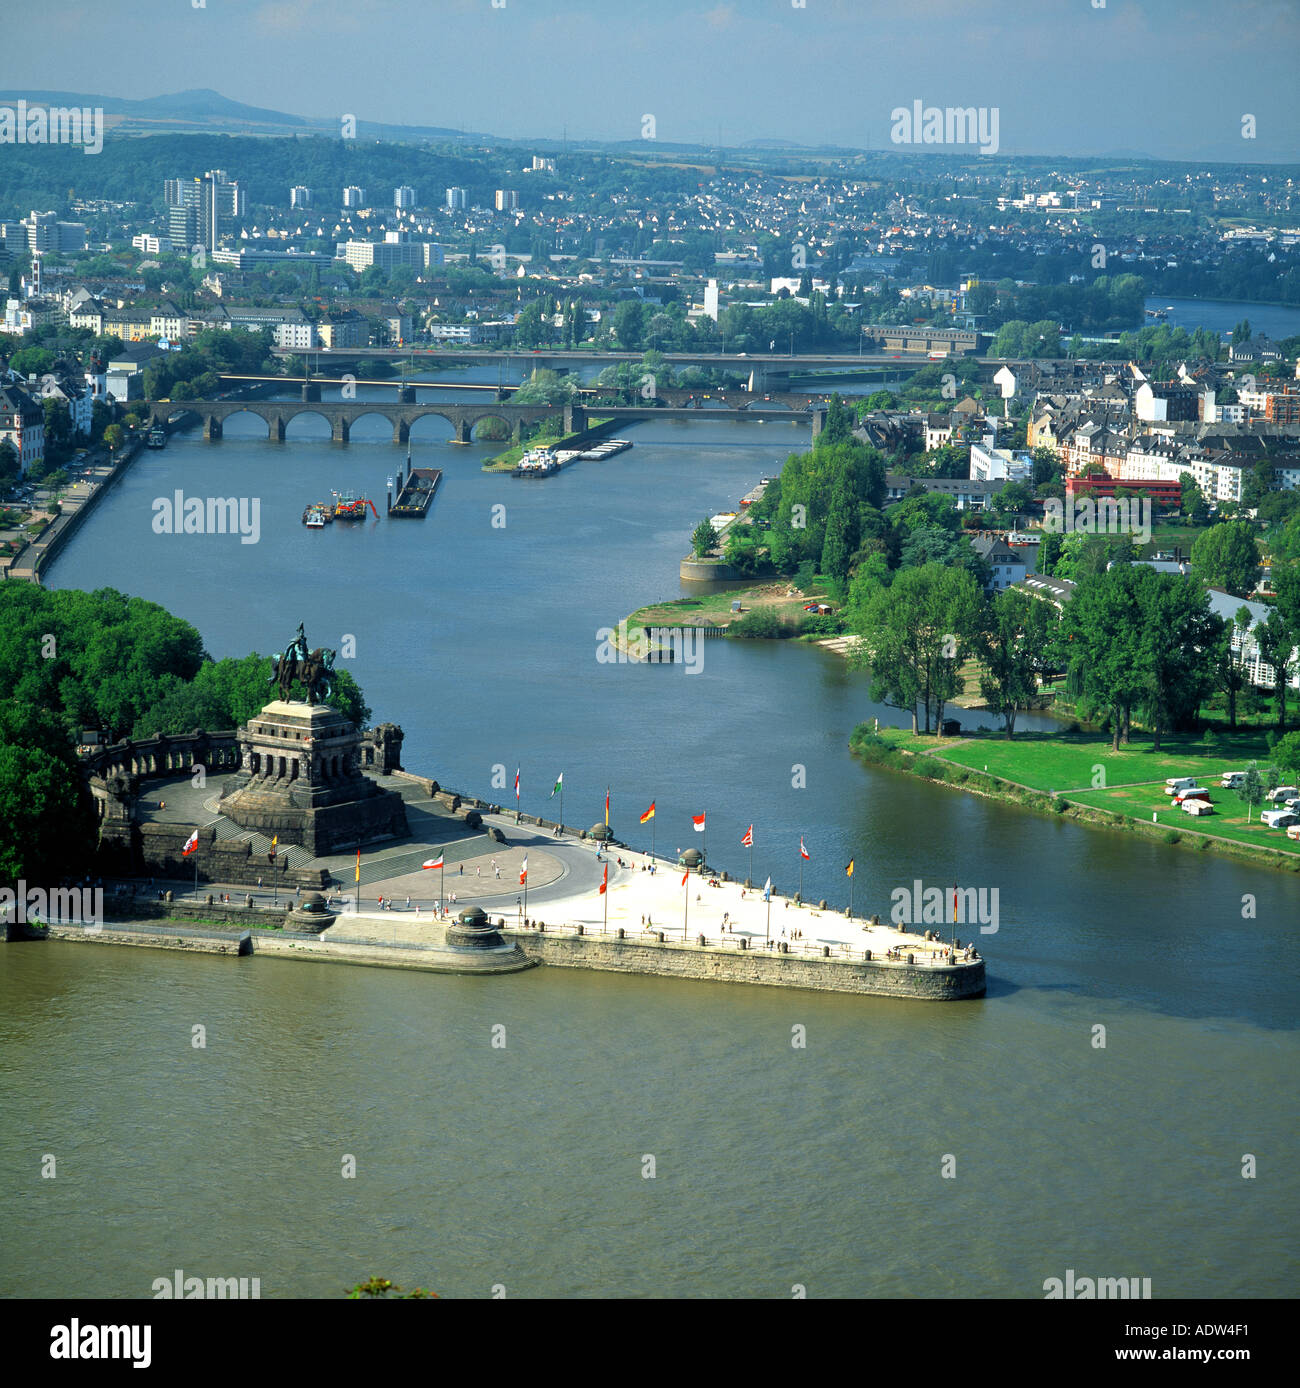 deutsches eck confluence of the rhine and mosel rivers koblenz stock photo royalty free image. Black Bedroom Furniture Sets. Home Design Ideas